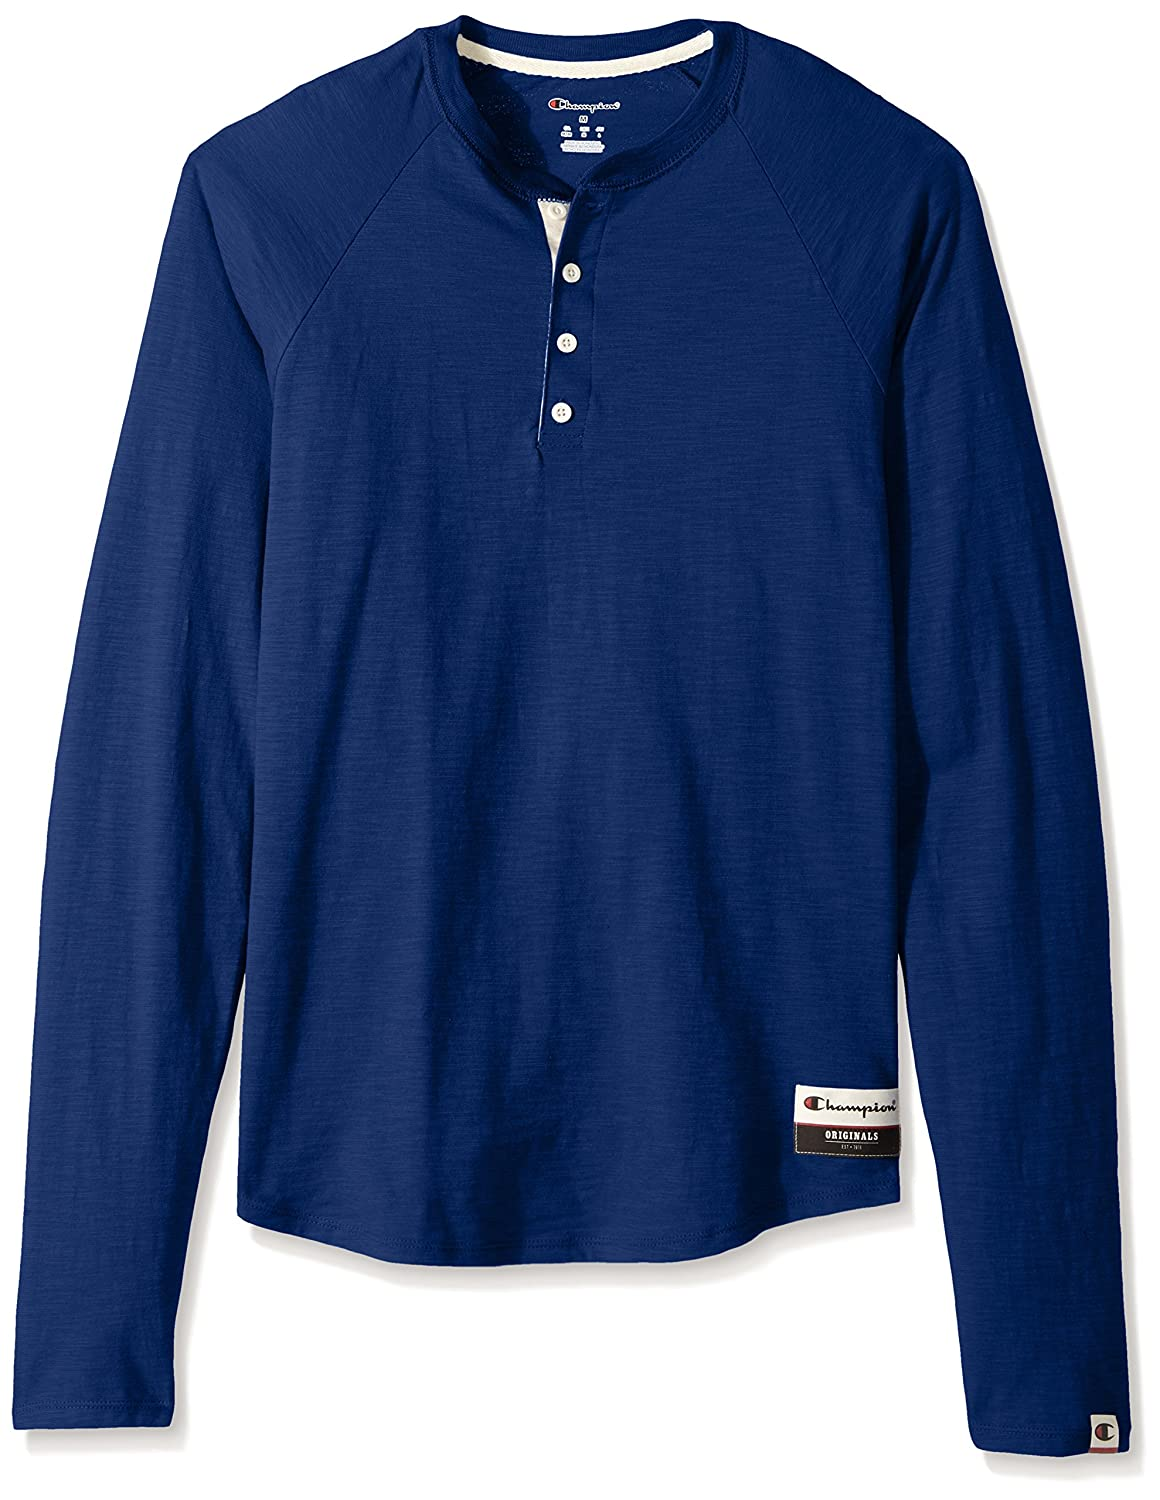 5952fe38 Machine Wash Soft slub cotton fabric upgrades your style 4-button placket  has a contrast-color inner placket. Tag-free ribbed collar; raglan sleeves